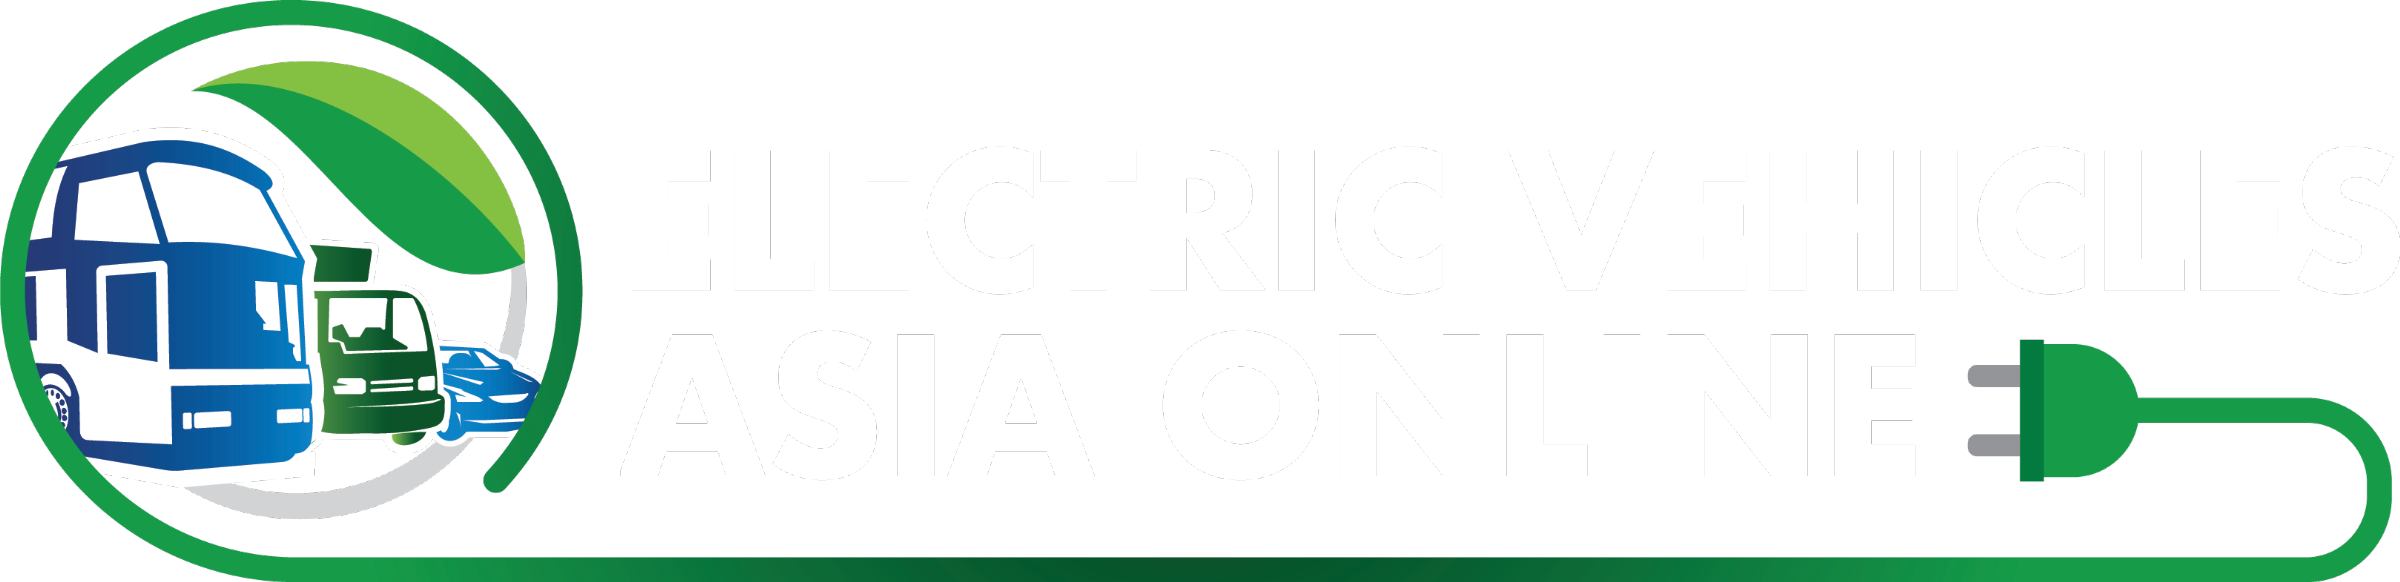 Electric Vehicles Asia Online 2021